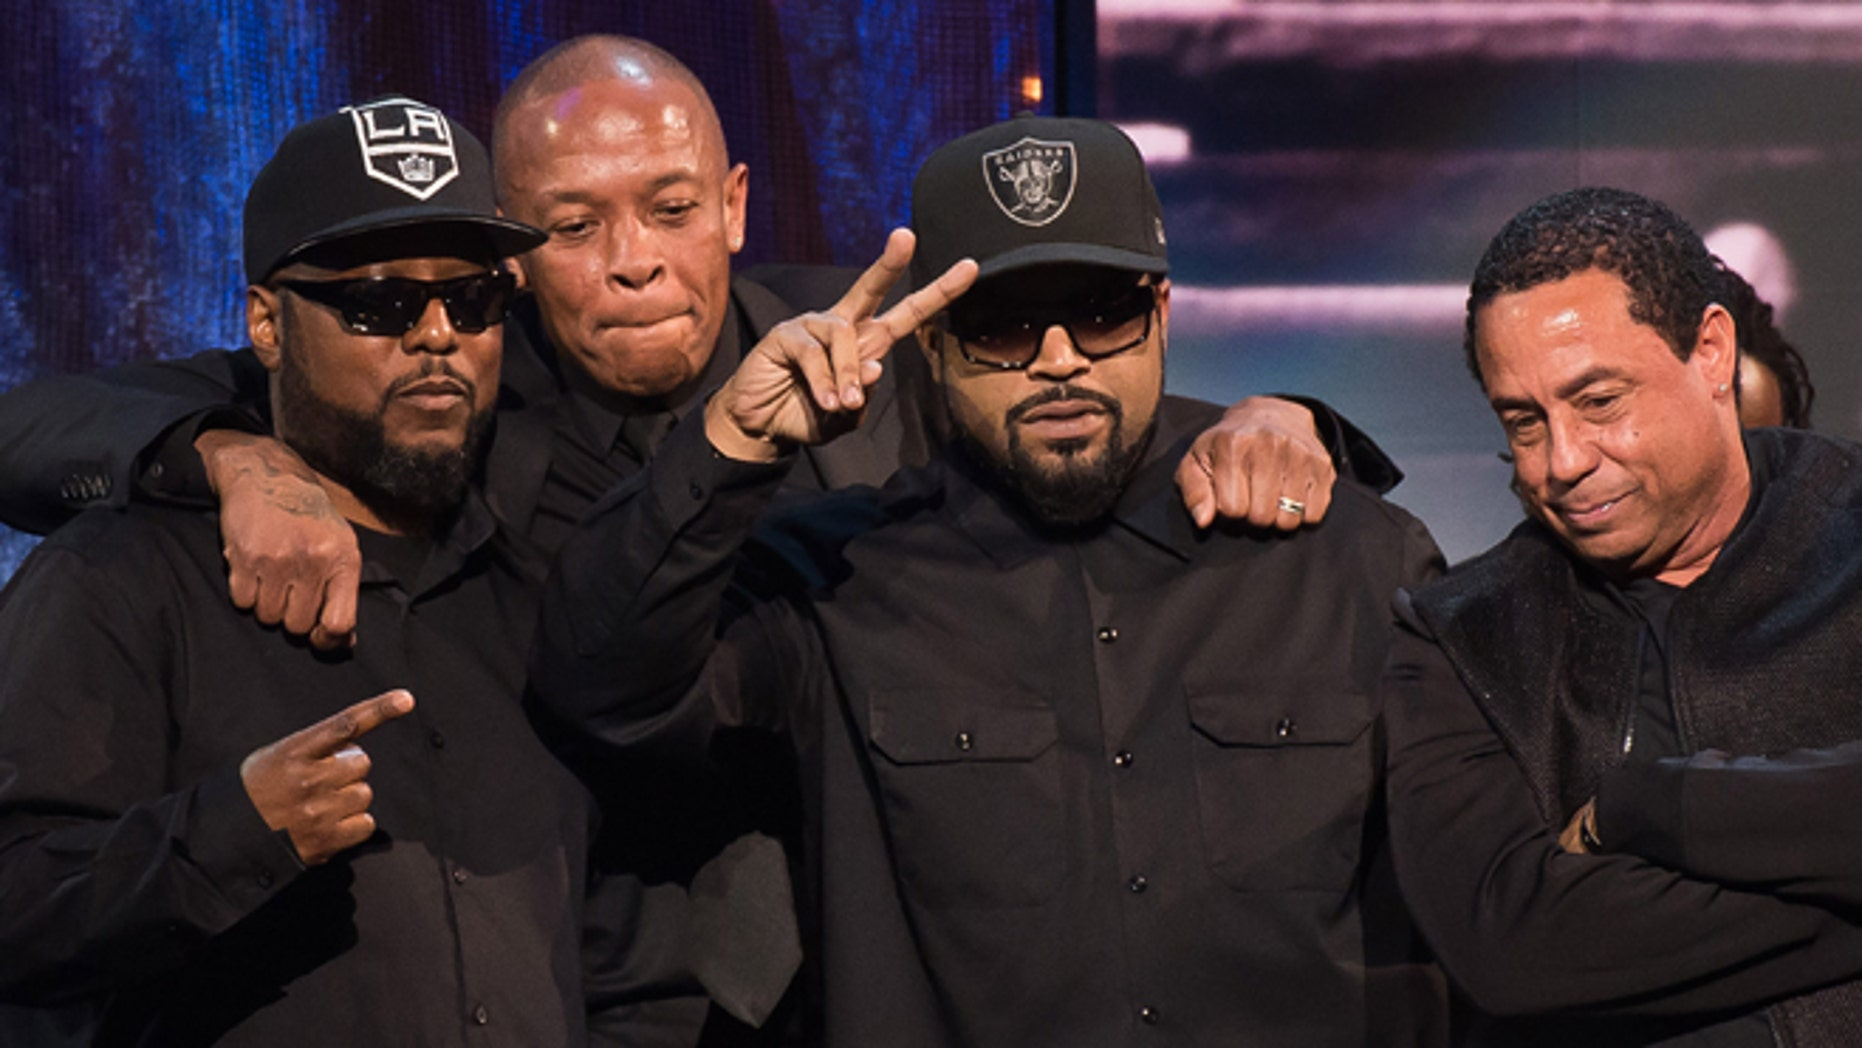 April 8. 2016. Inductees MC Ren, from left, Dr. Dre, Ice Cube and DJ Yella from N.W.A appear at the 31st Annual Rock and Roll Hall of Fame Induction Ceremony in New York.